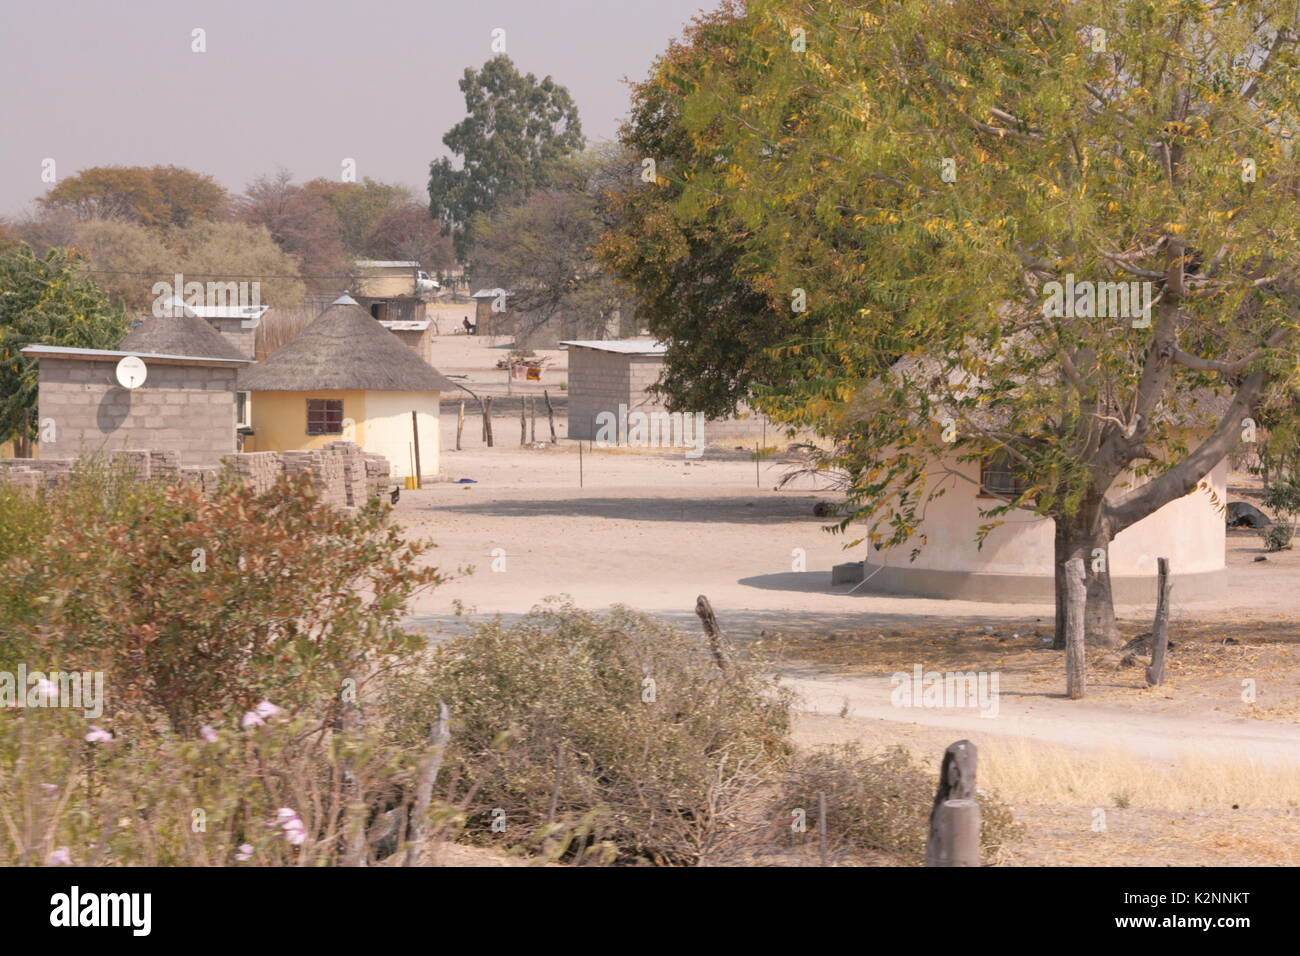 Houses and huts in the city of Maun, on the edge of the Okavango Delta, Botswana - Stock Image